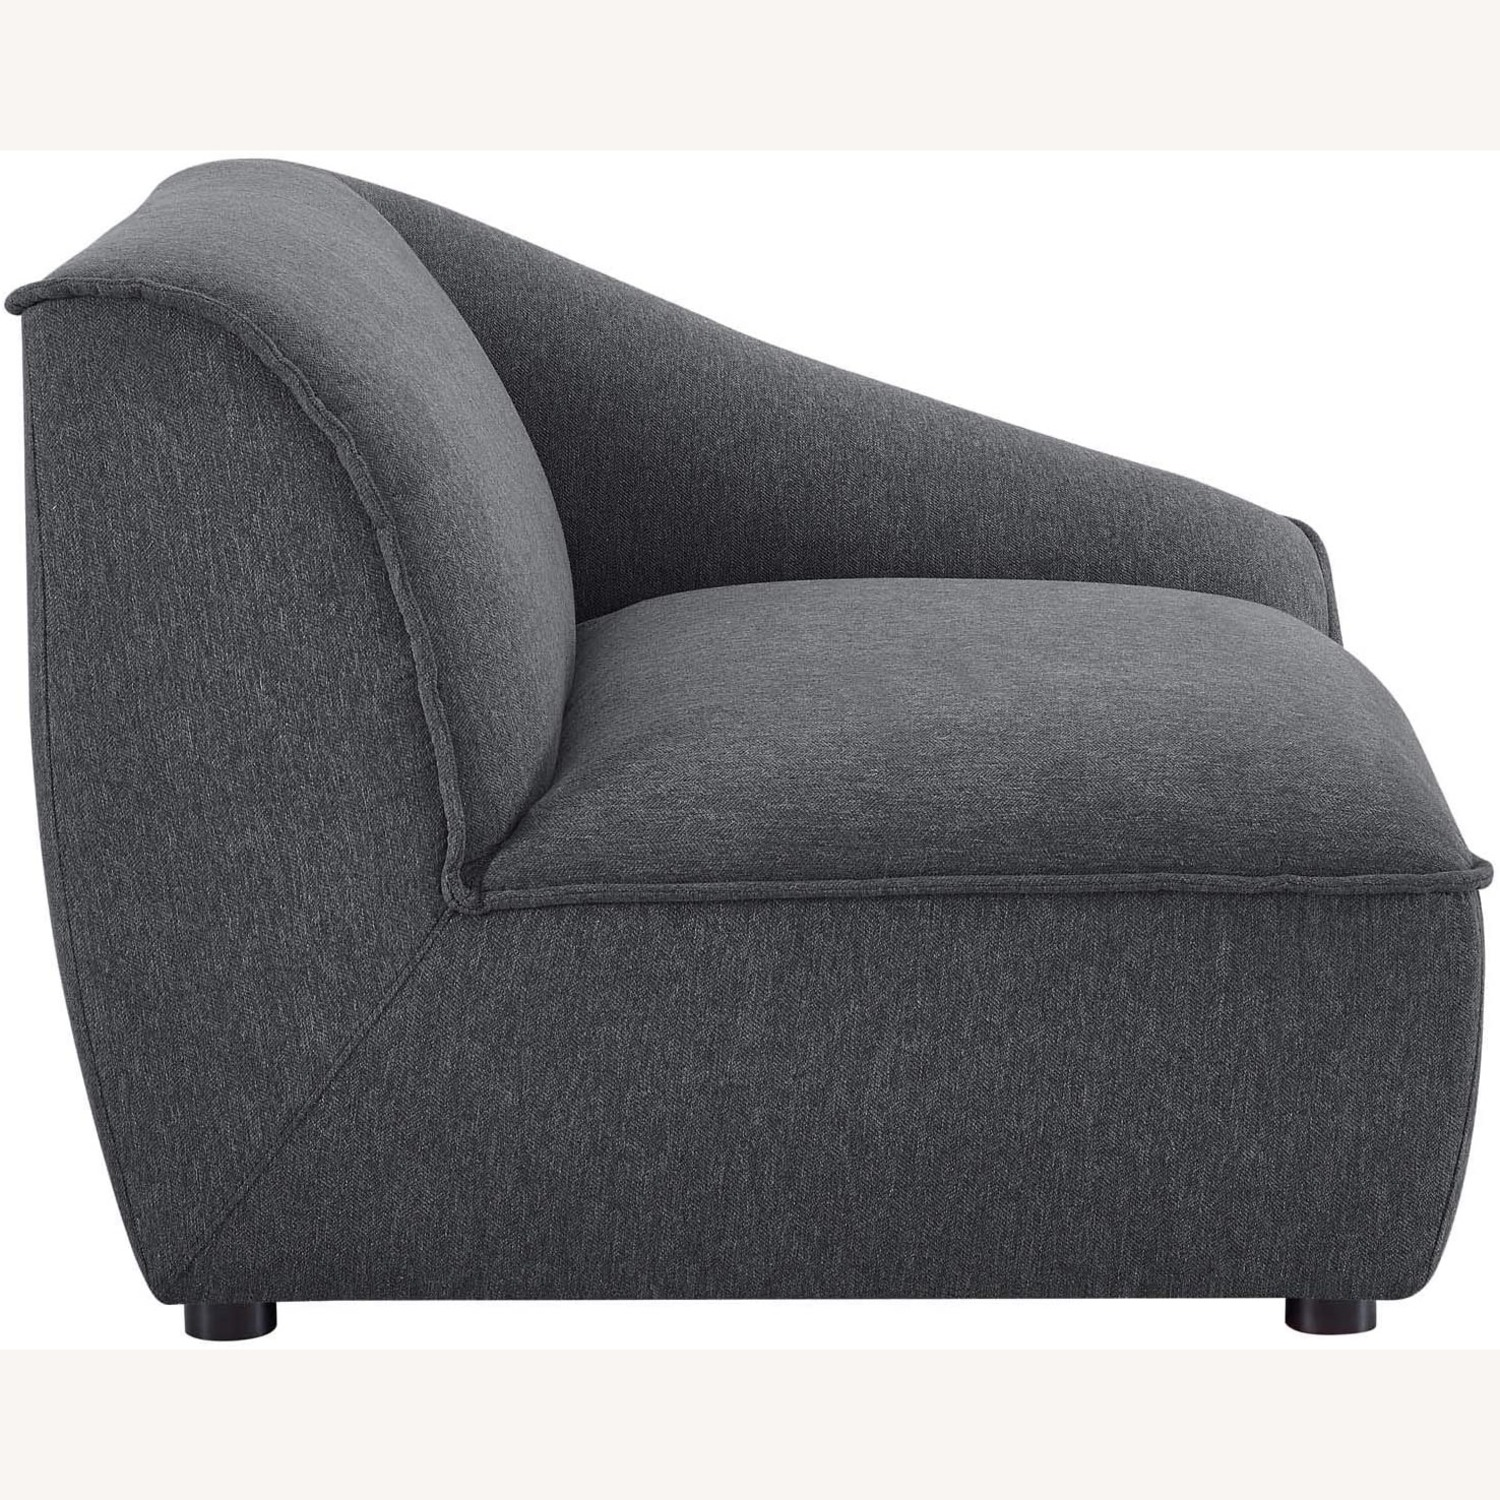 2-Piece Modern Loveseat In Charcoal Finish - image-5